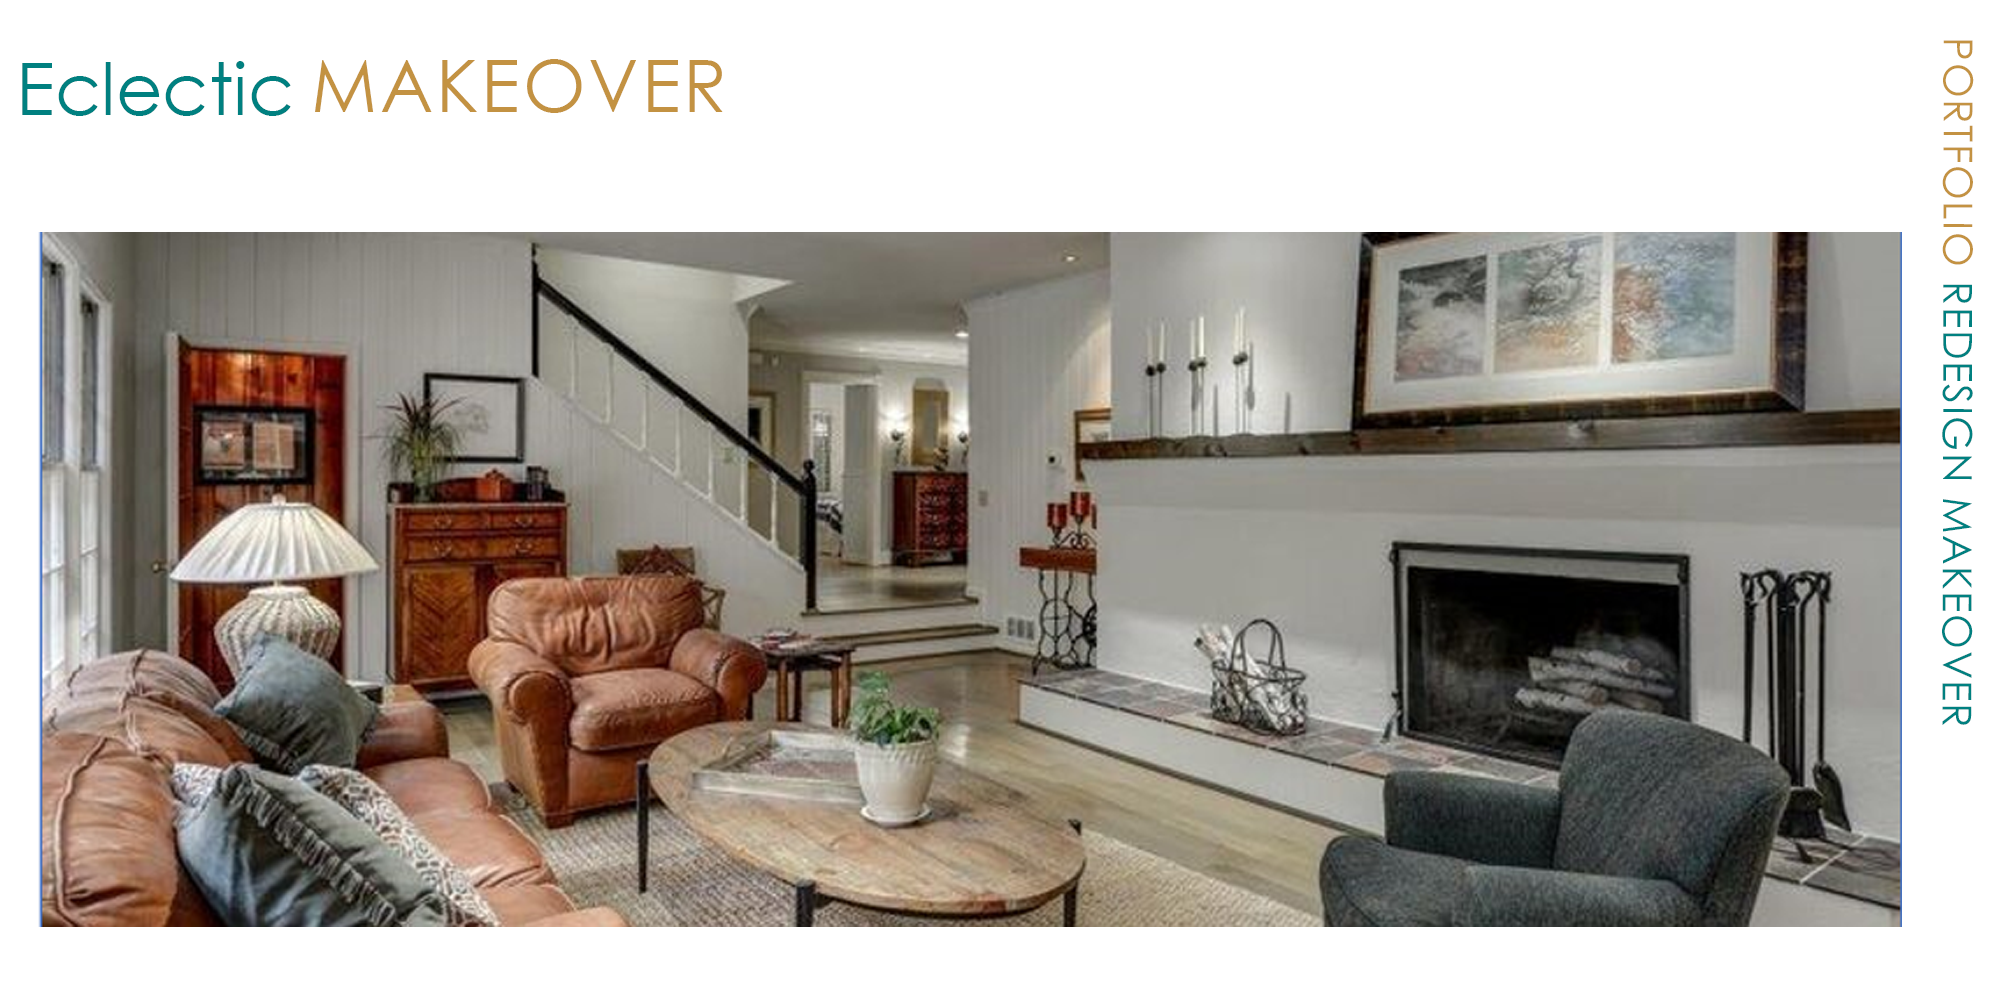 Eclectic Makeover